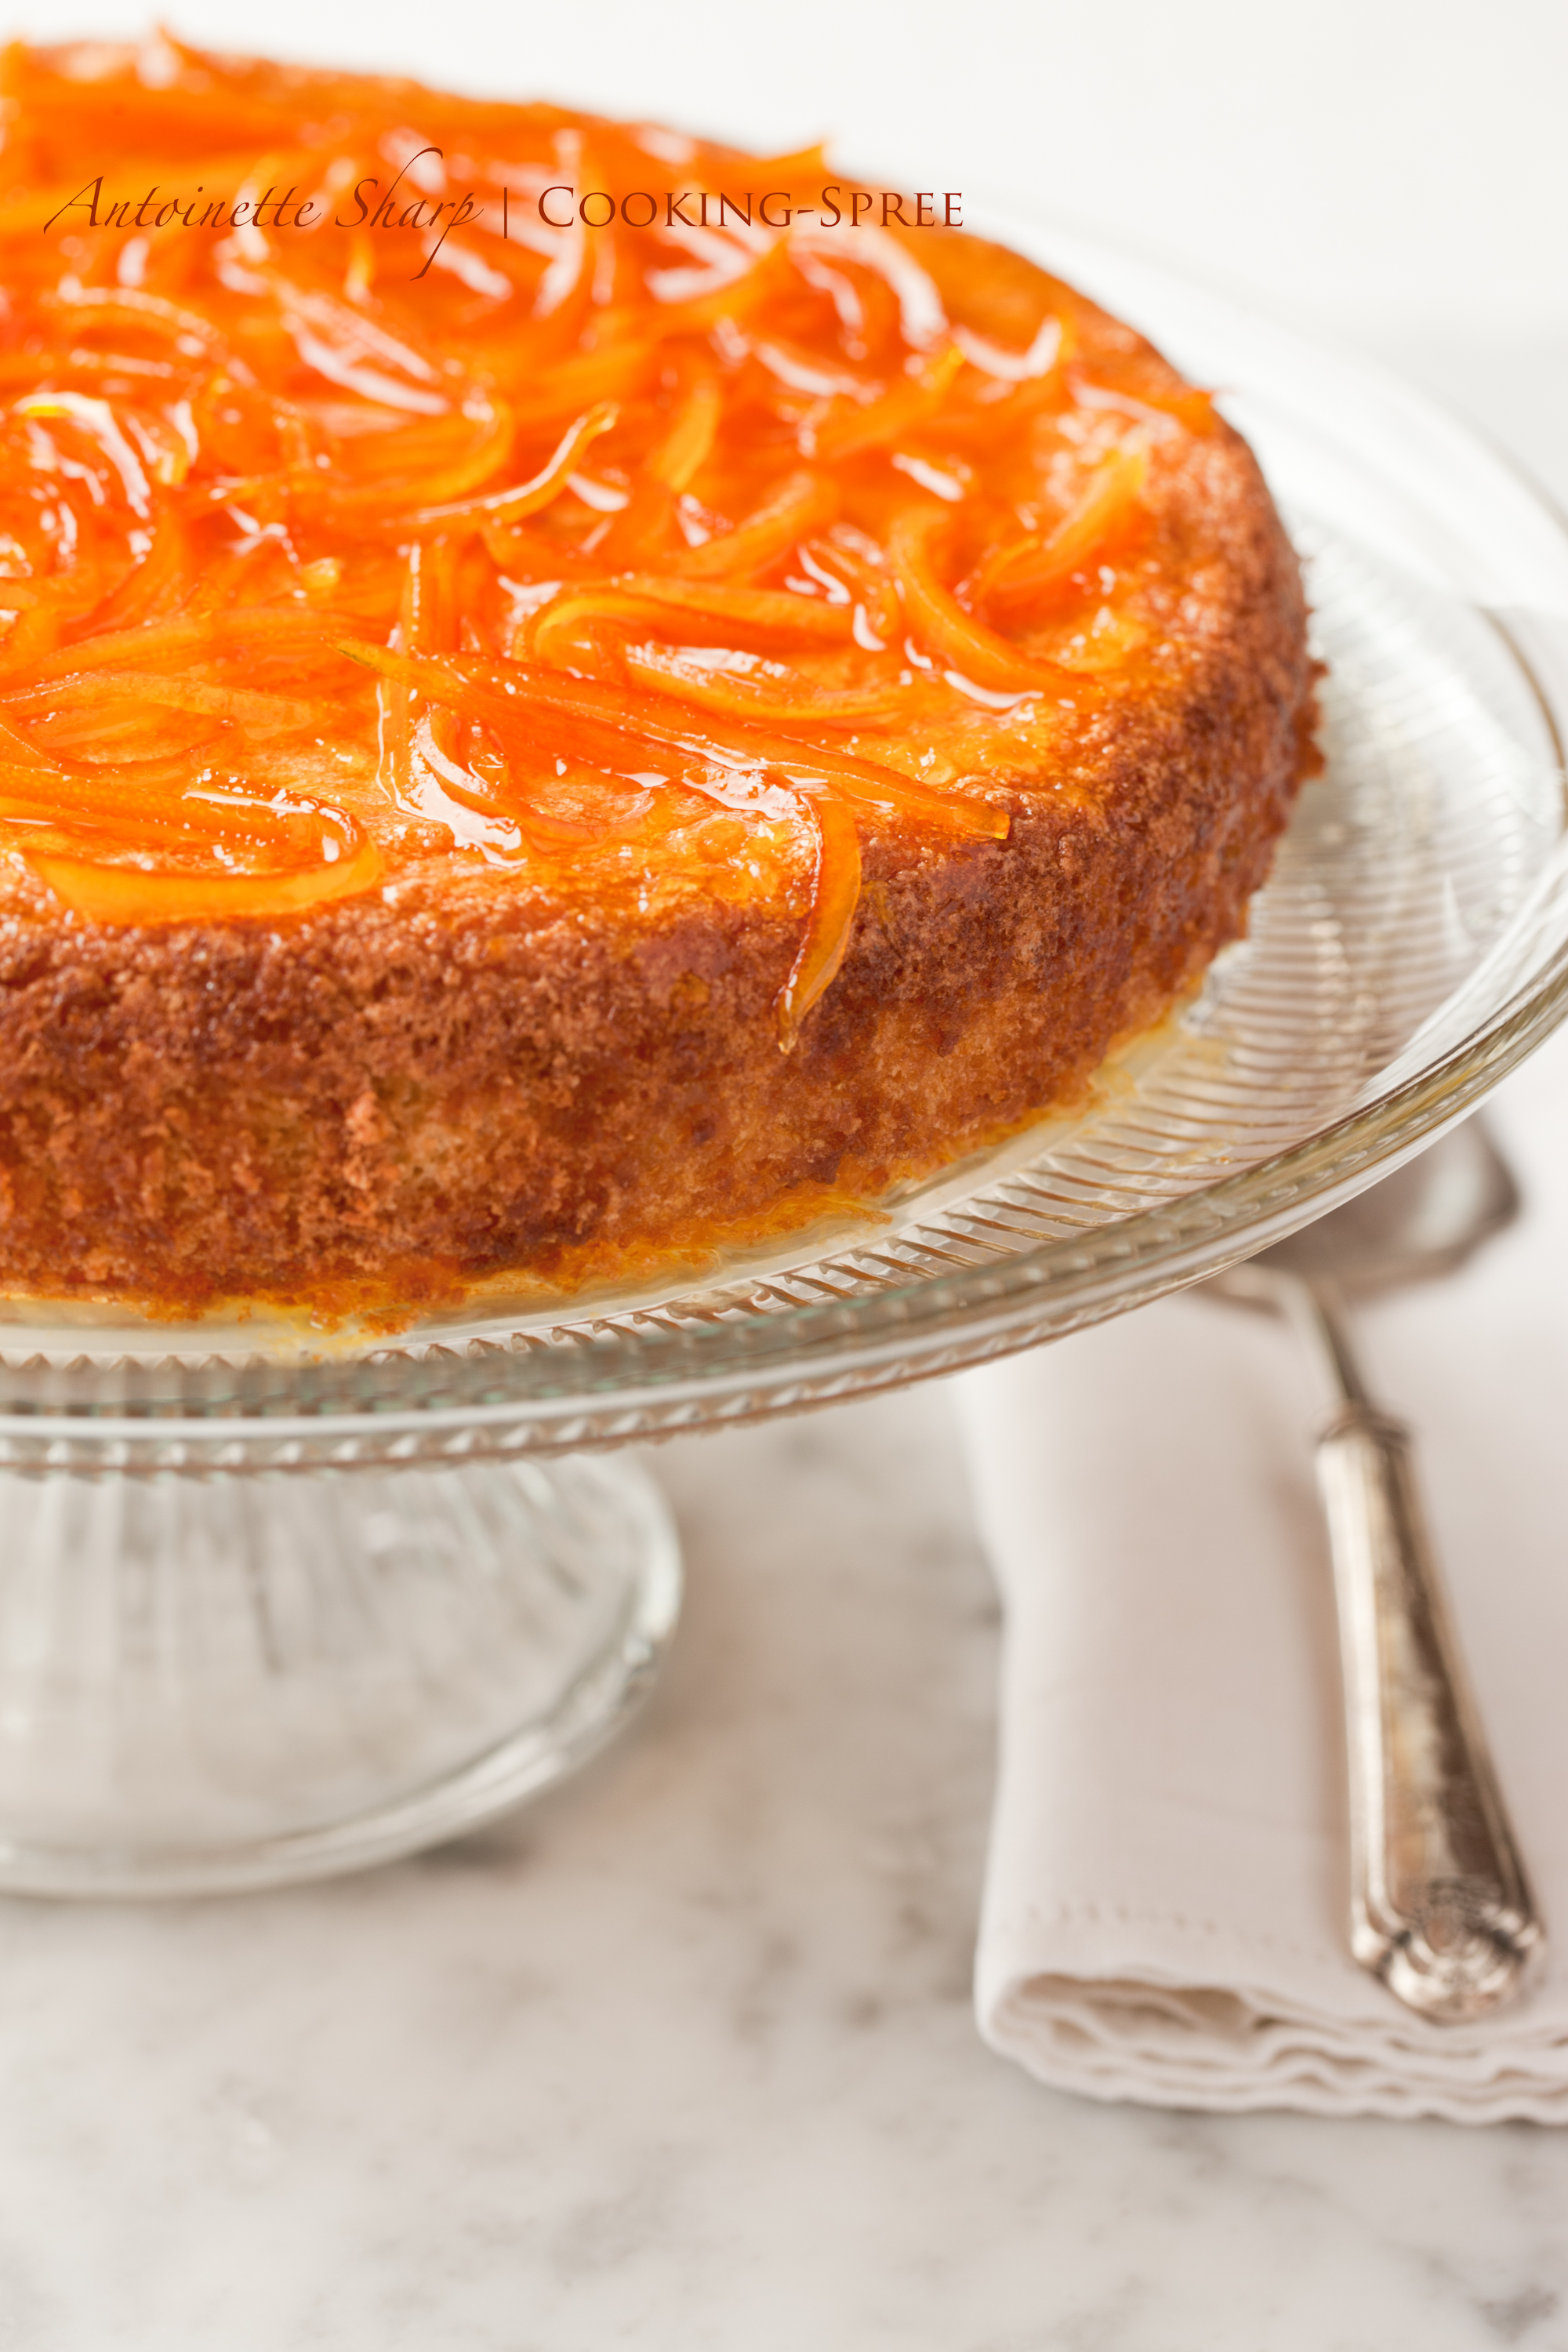 ... .yummly.com/recipe/Almond-cake-with-orange-flower-water-syrup-318651